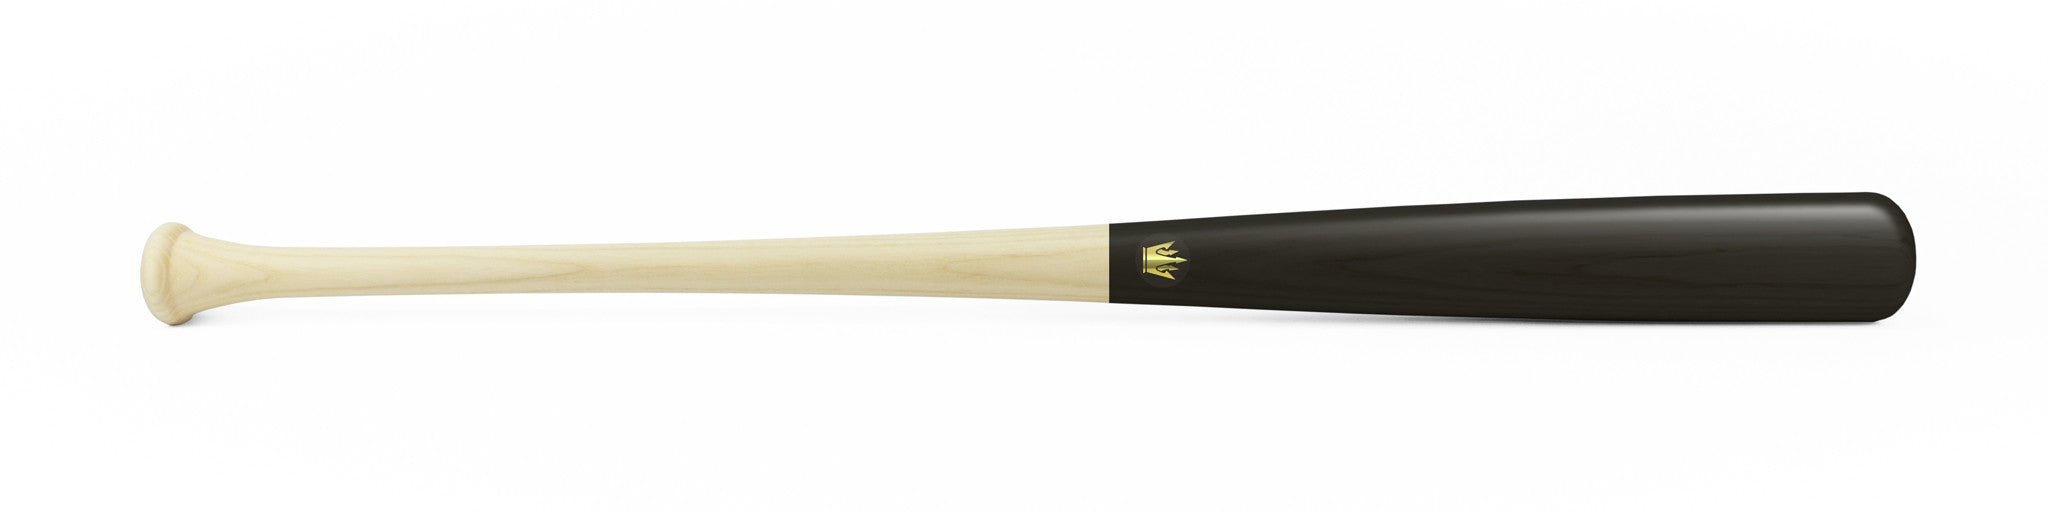 Wood bat - Ash model 271 Black Standard - 23